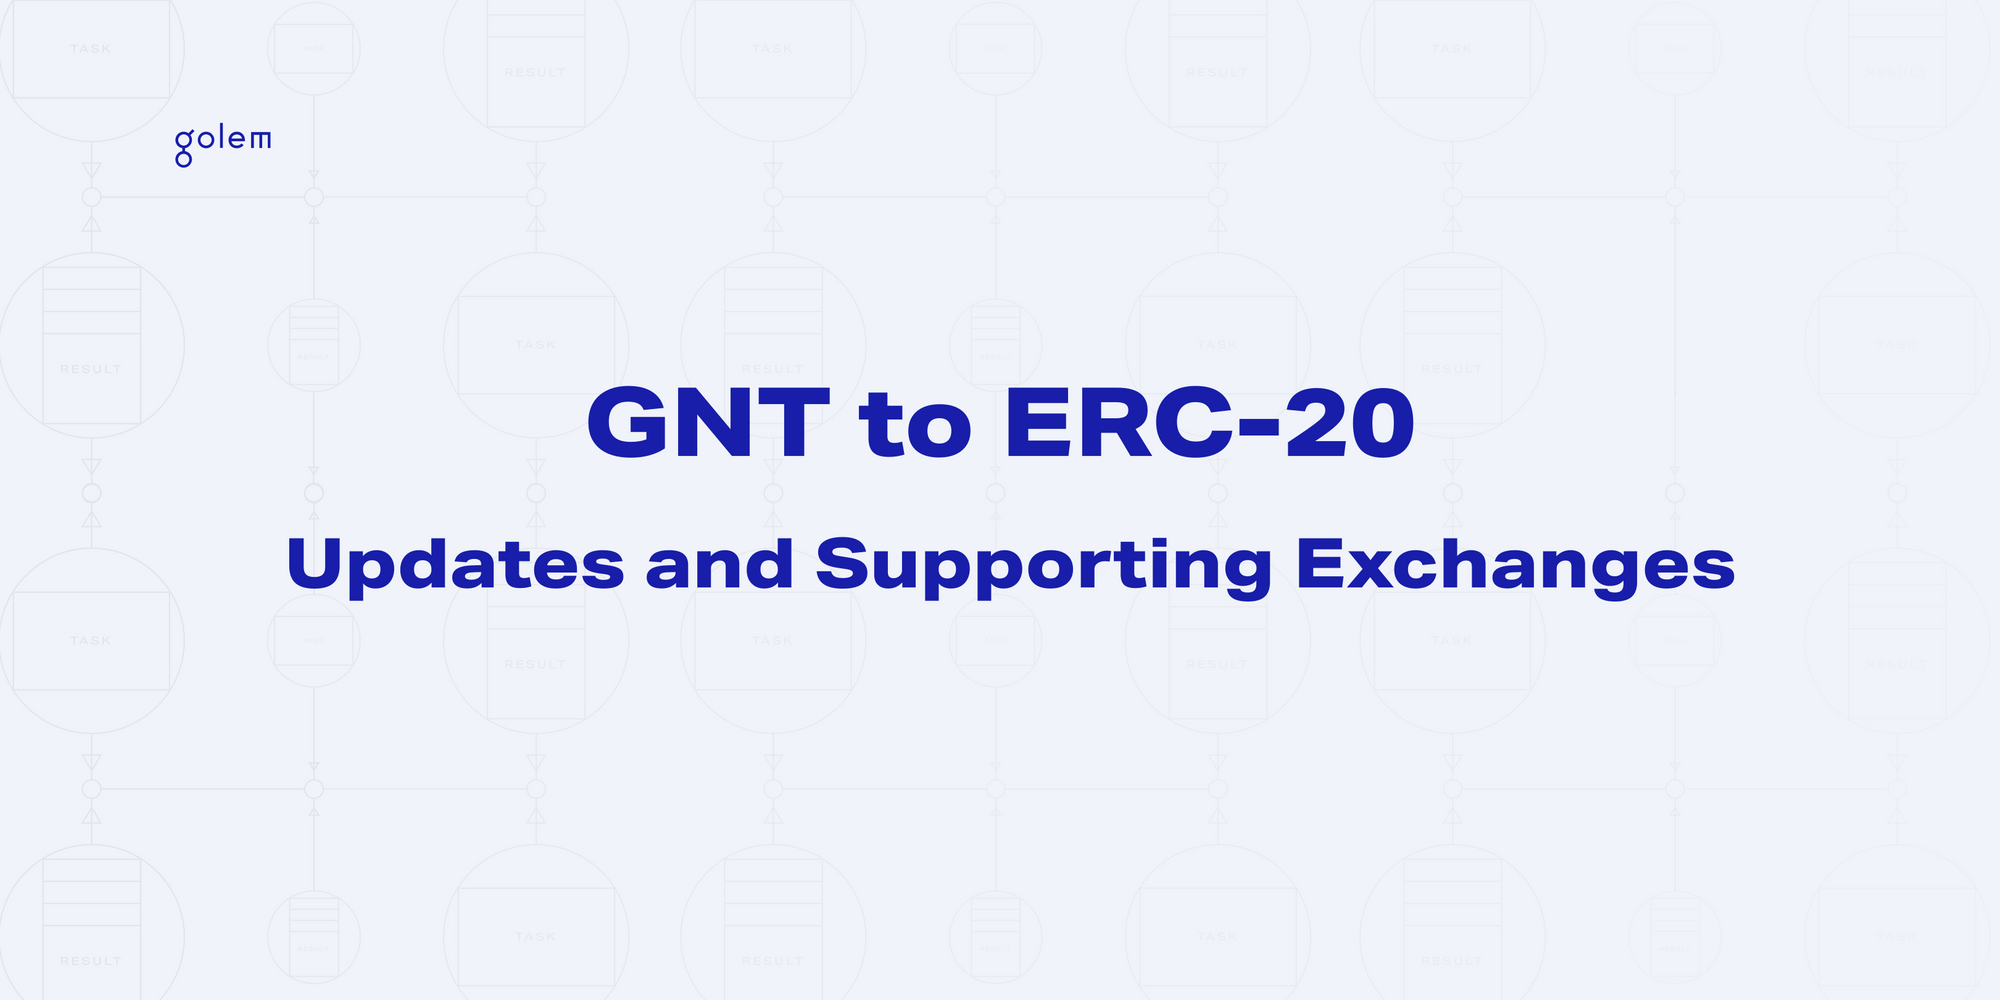 GNT to ERC-20 (happening on November 19, 4pm CET) - Updates and supporting exchanges